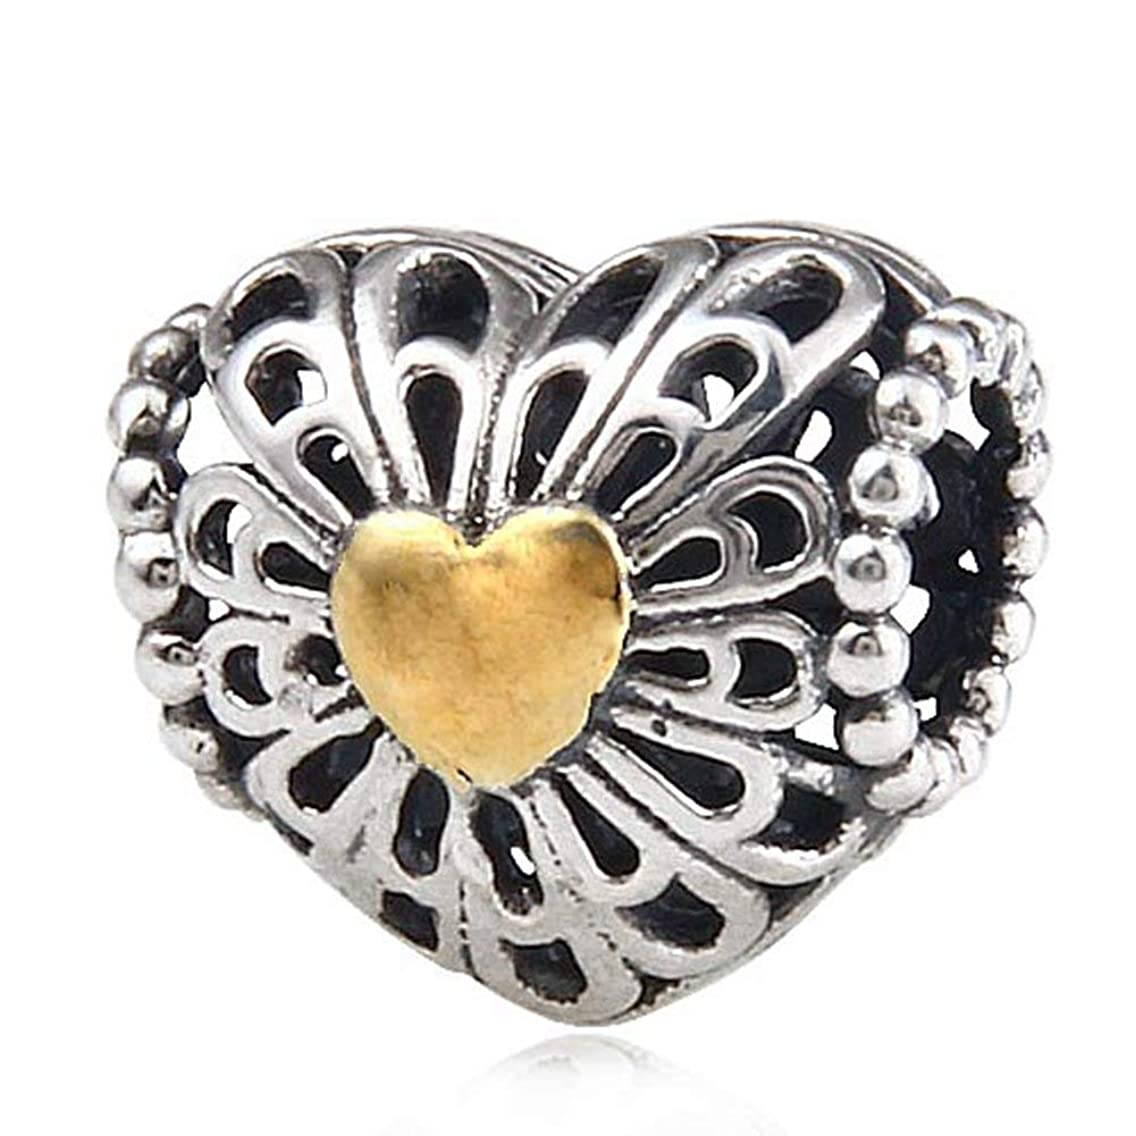 Gold Plated Heart Charms 25 Sterling Silver Beads fit for DIY Charms Bracelets